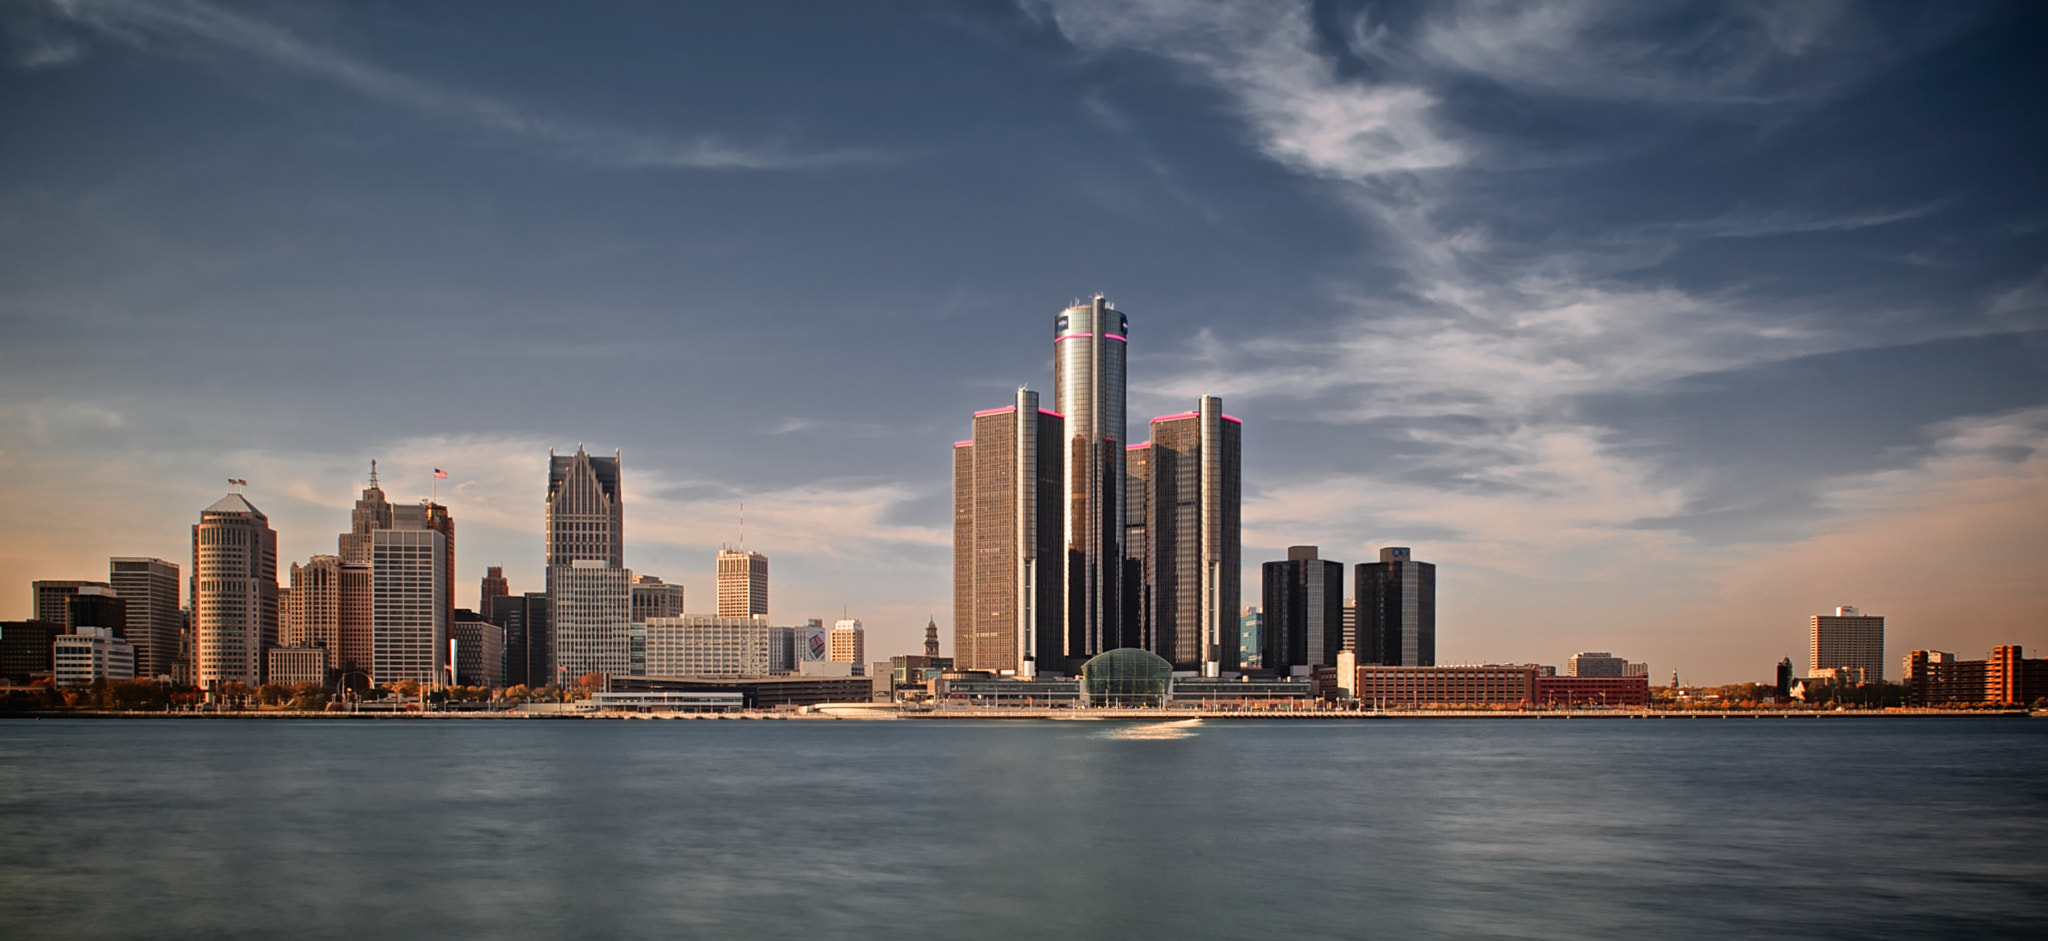 Photograph Detroit by Ulf Thausing on 500px